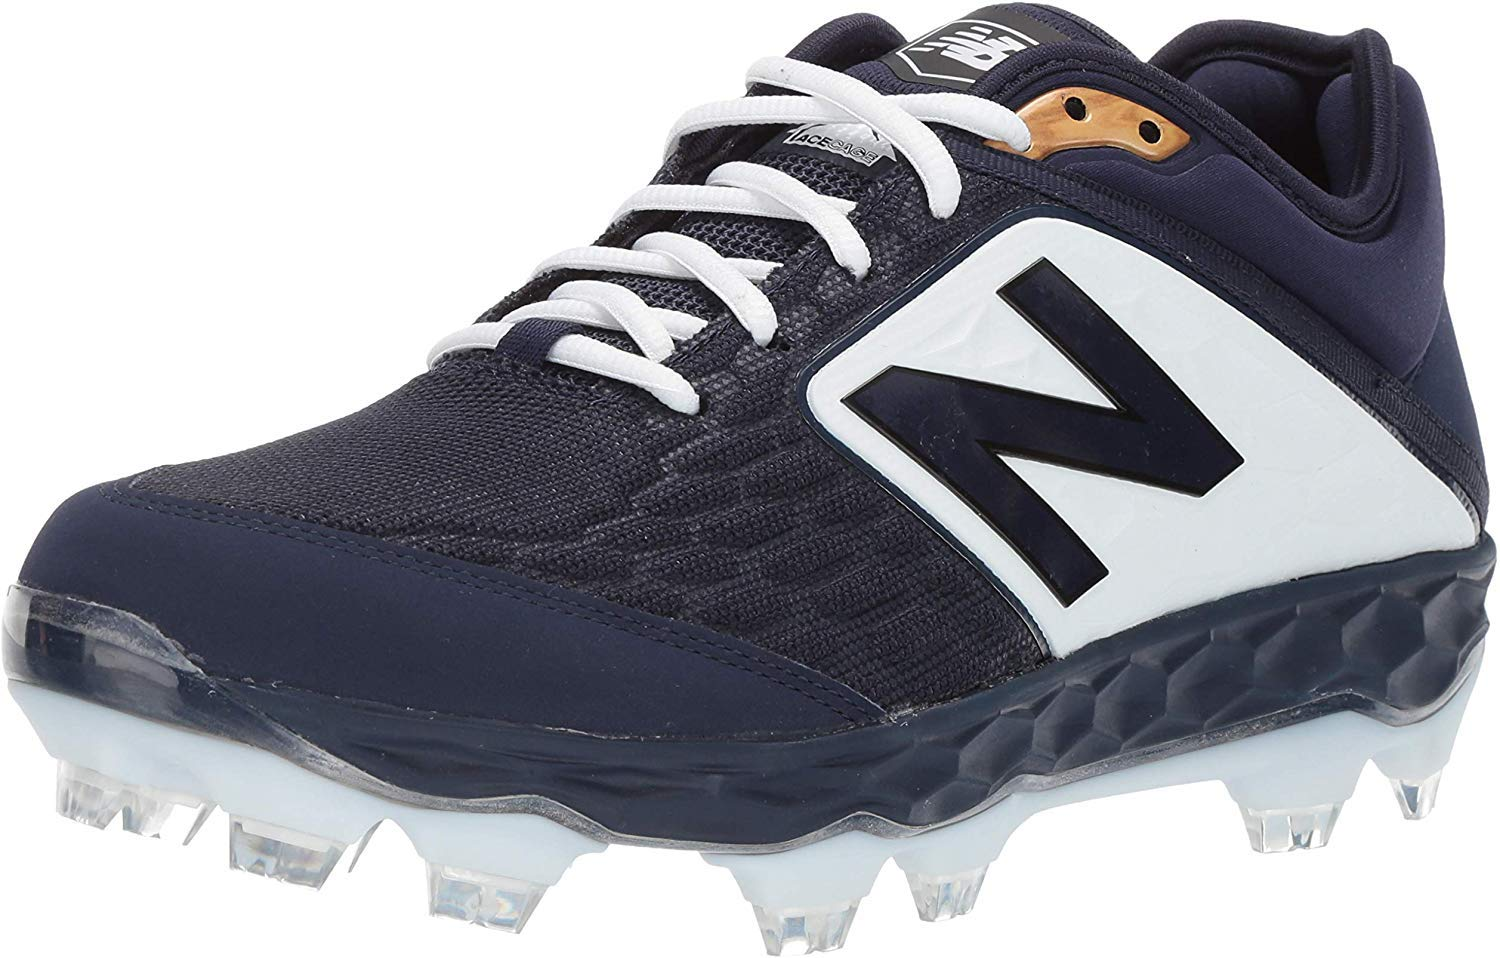 New Balance Mens 3000v4 Baseball Cleats Turf Trainers Shoe - Navy/White/White